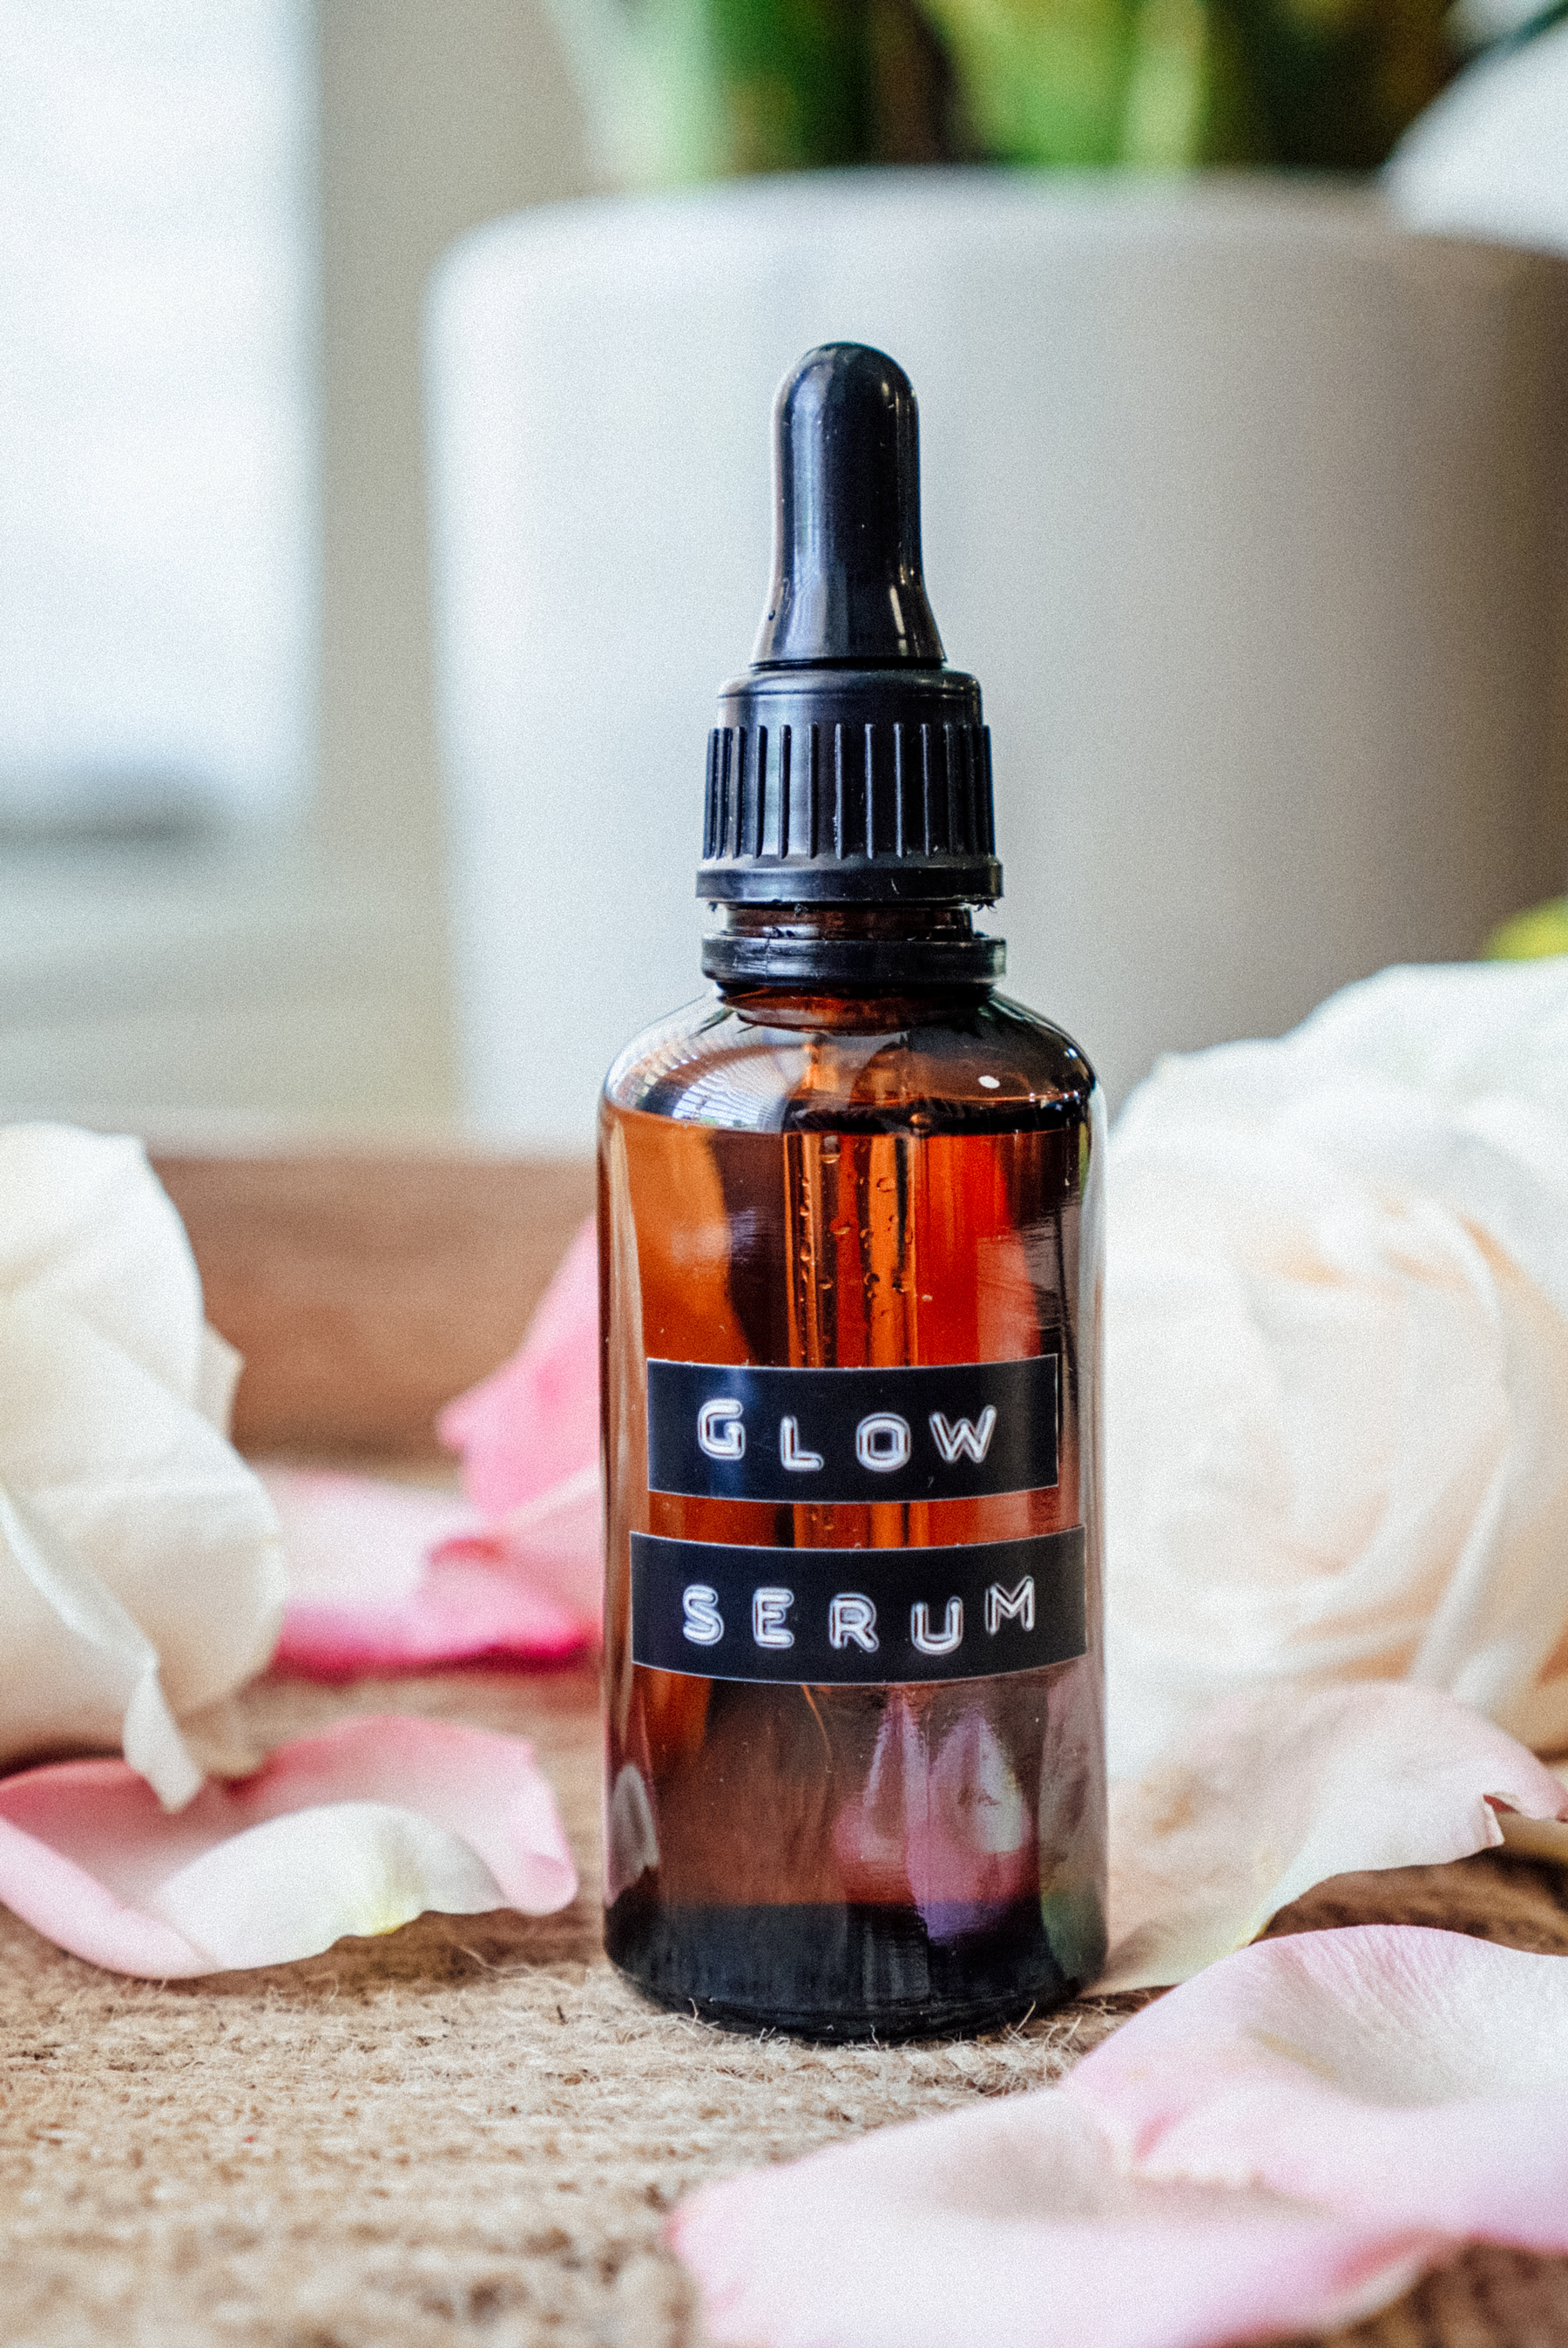 Needing to take better care of your skin? Look no further than my DIY essential oil glow serum. It's great for oily to dry to normal skin!